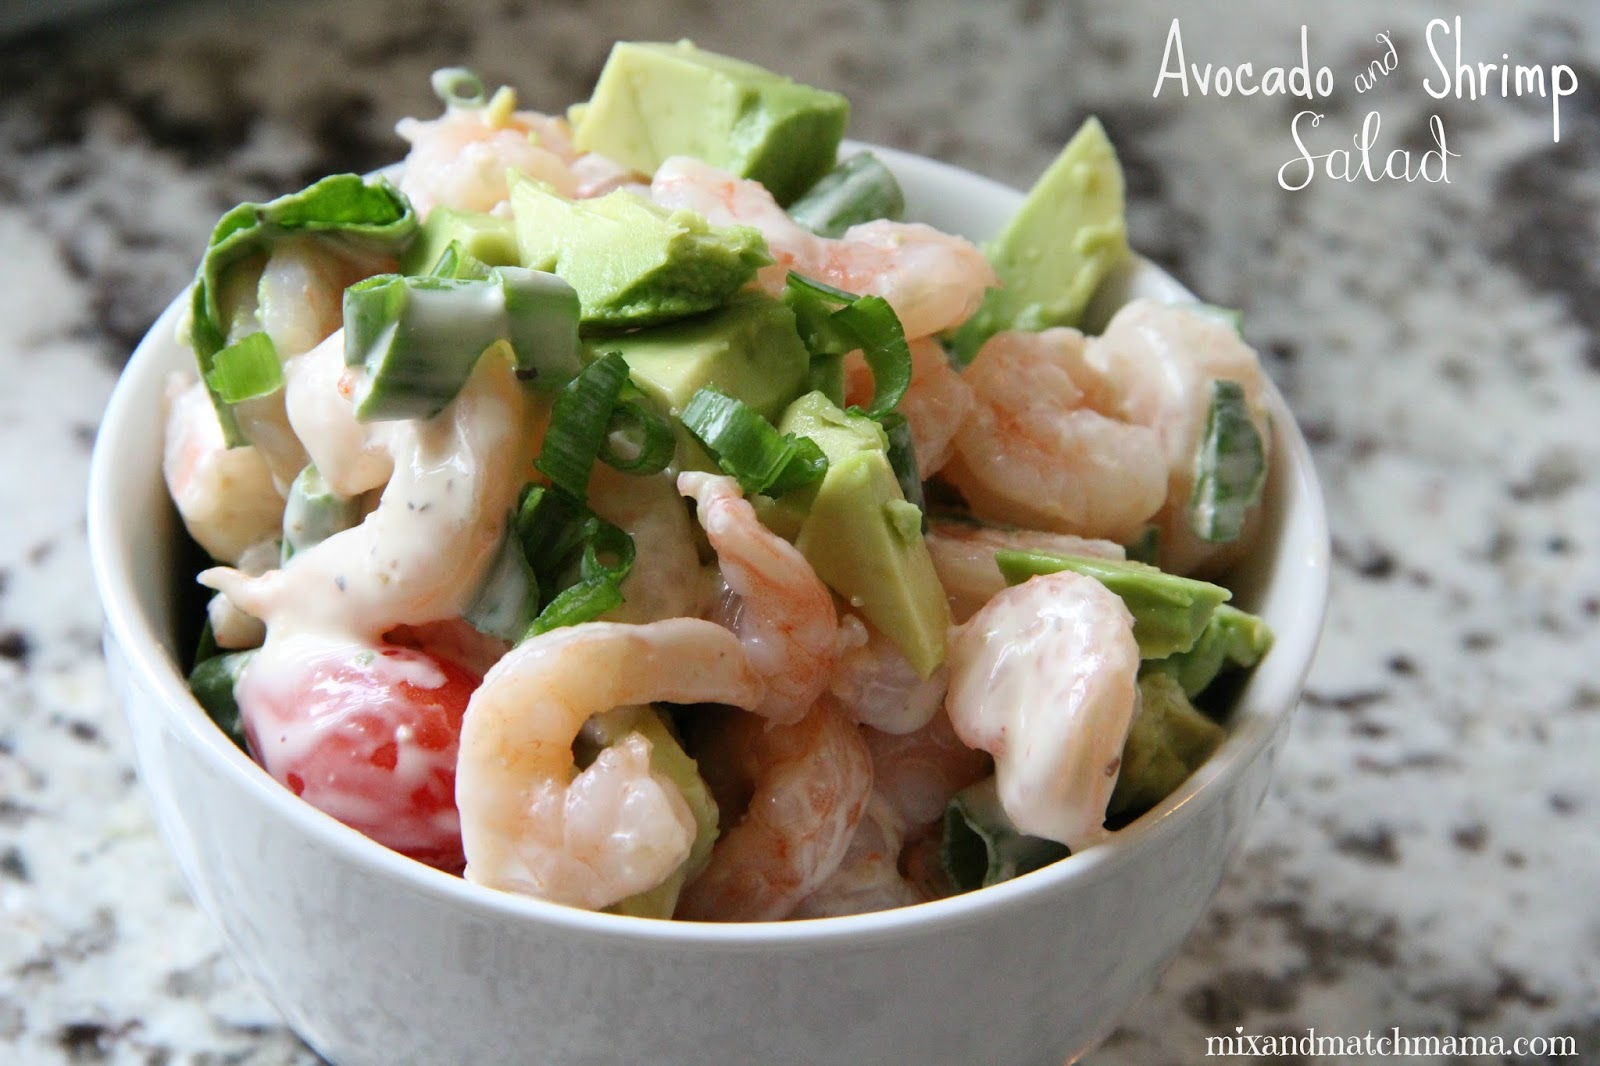 ... shrimp for lunch shrimp is just so easy to throw into a pasta or salad